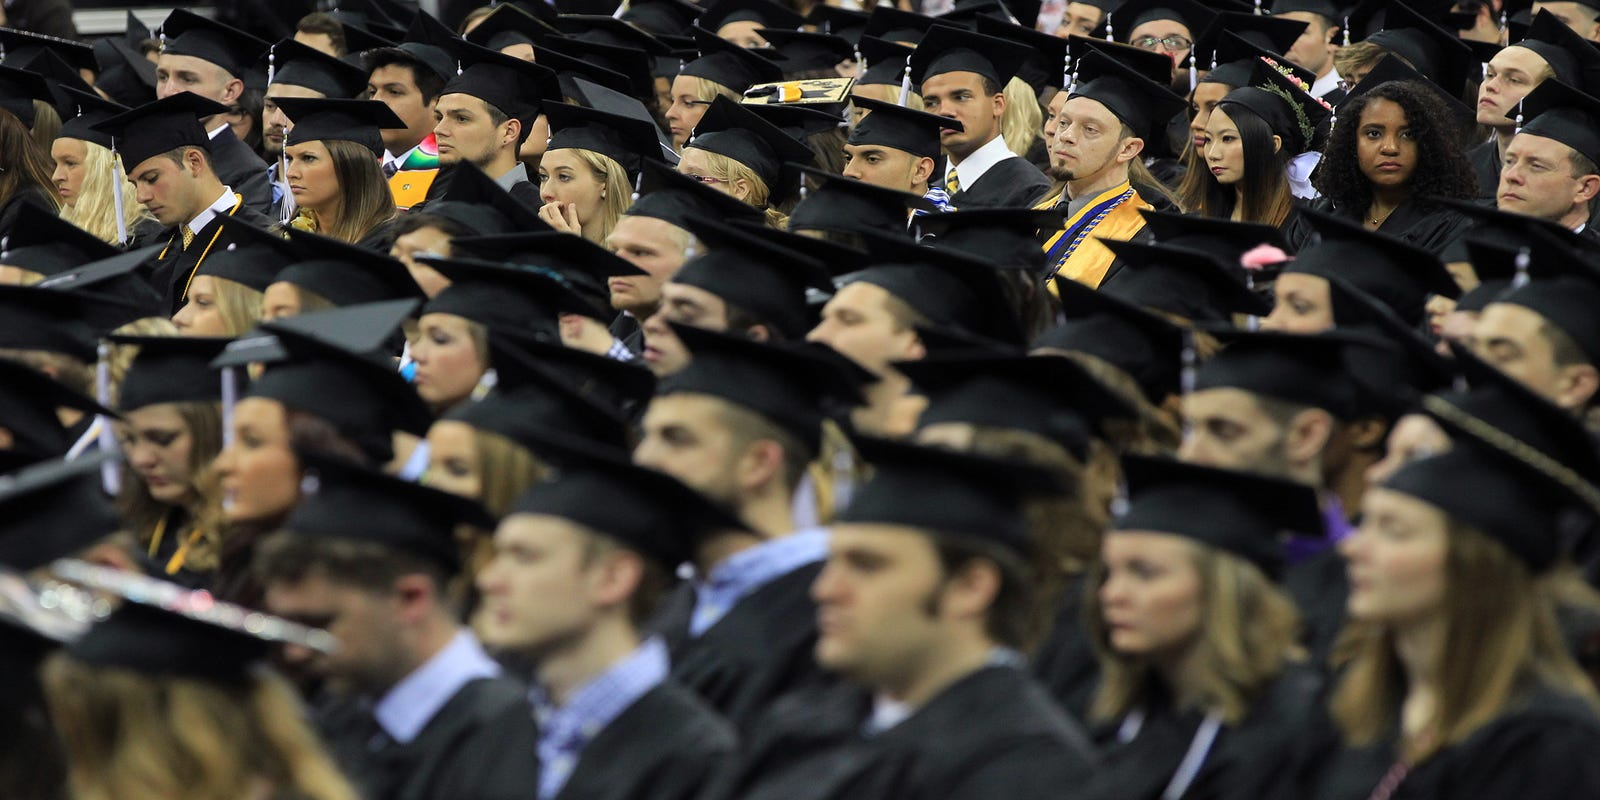 UI's next move could be tuition hike